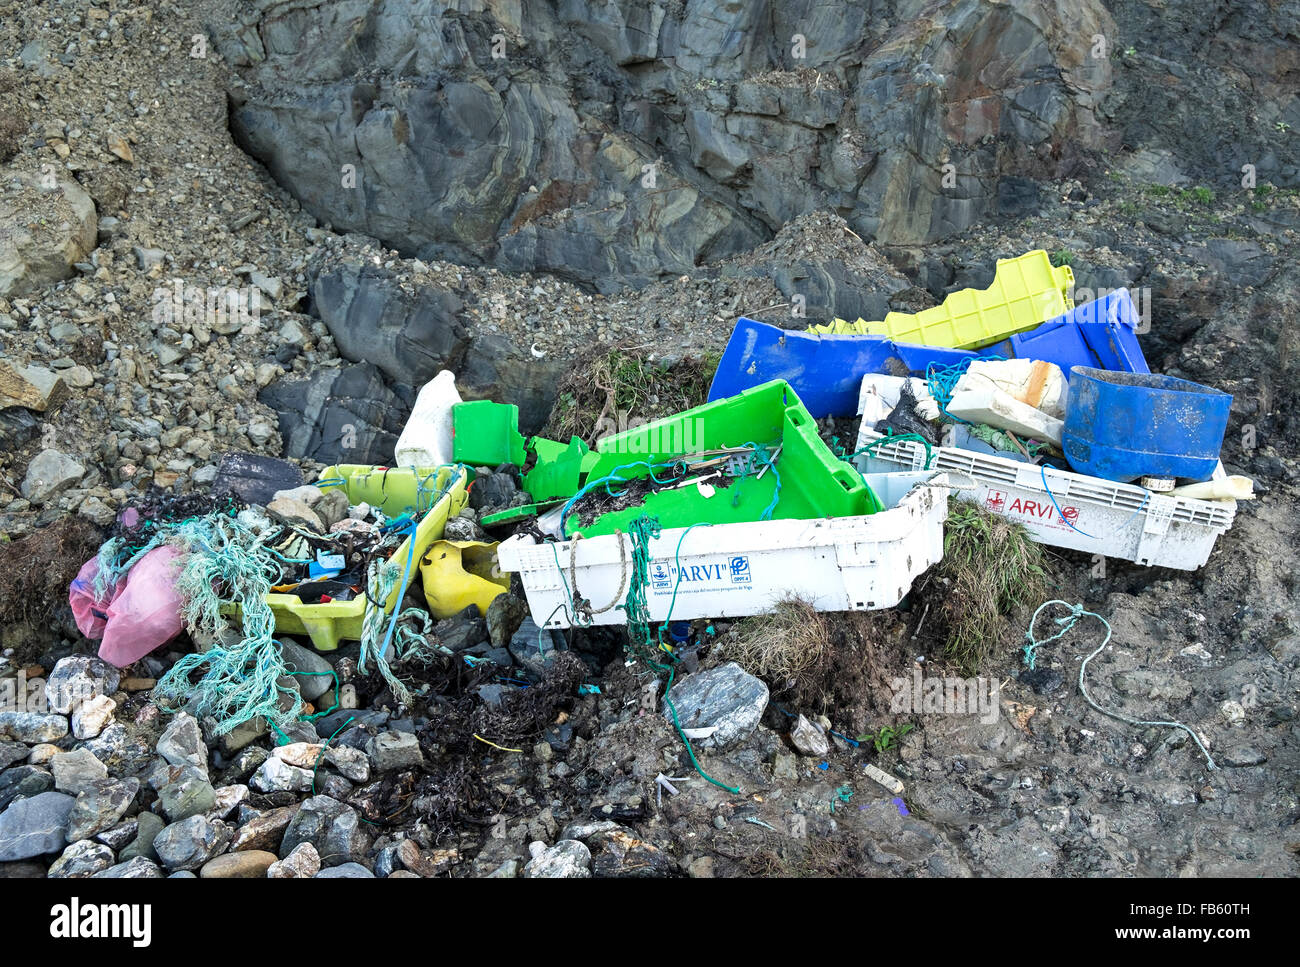 Litter that has been collected on a beach in cornwall, england, uk - Stock Image